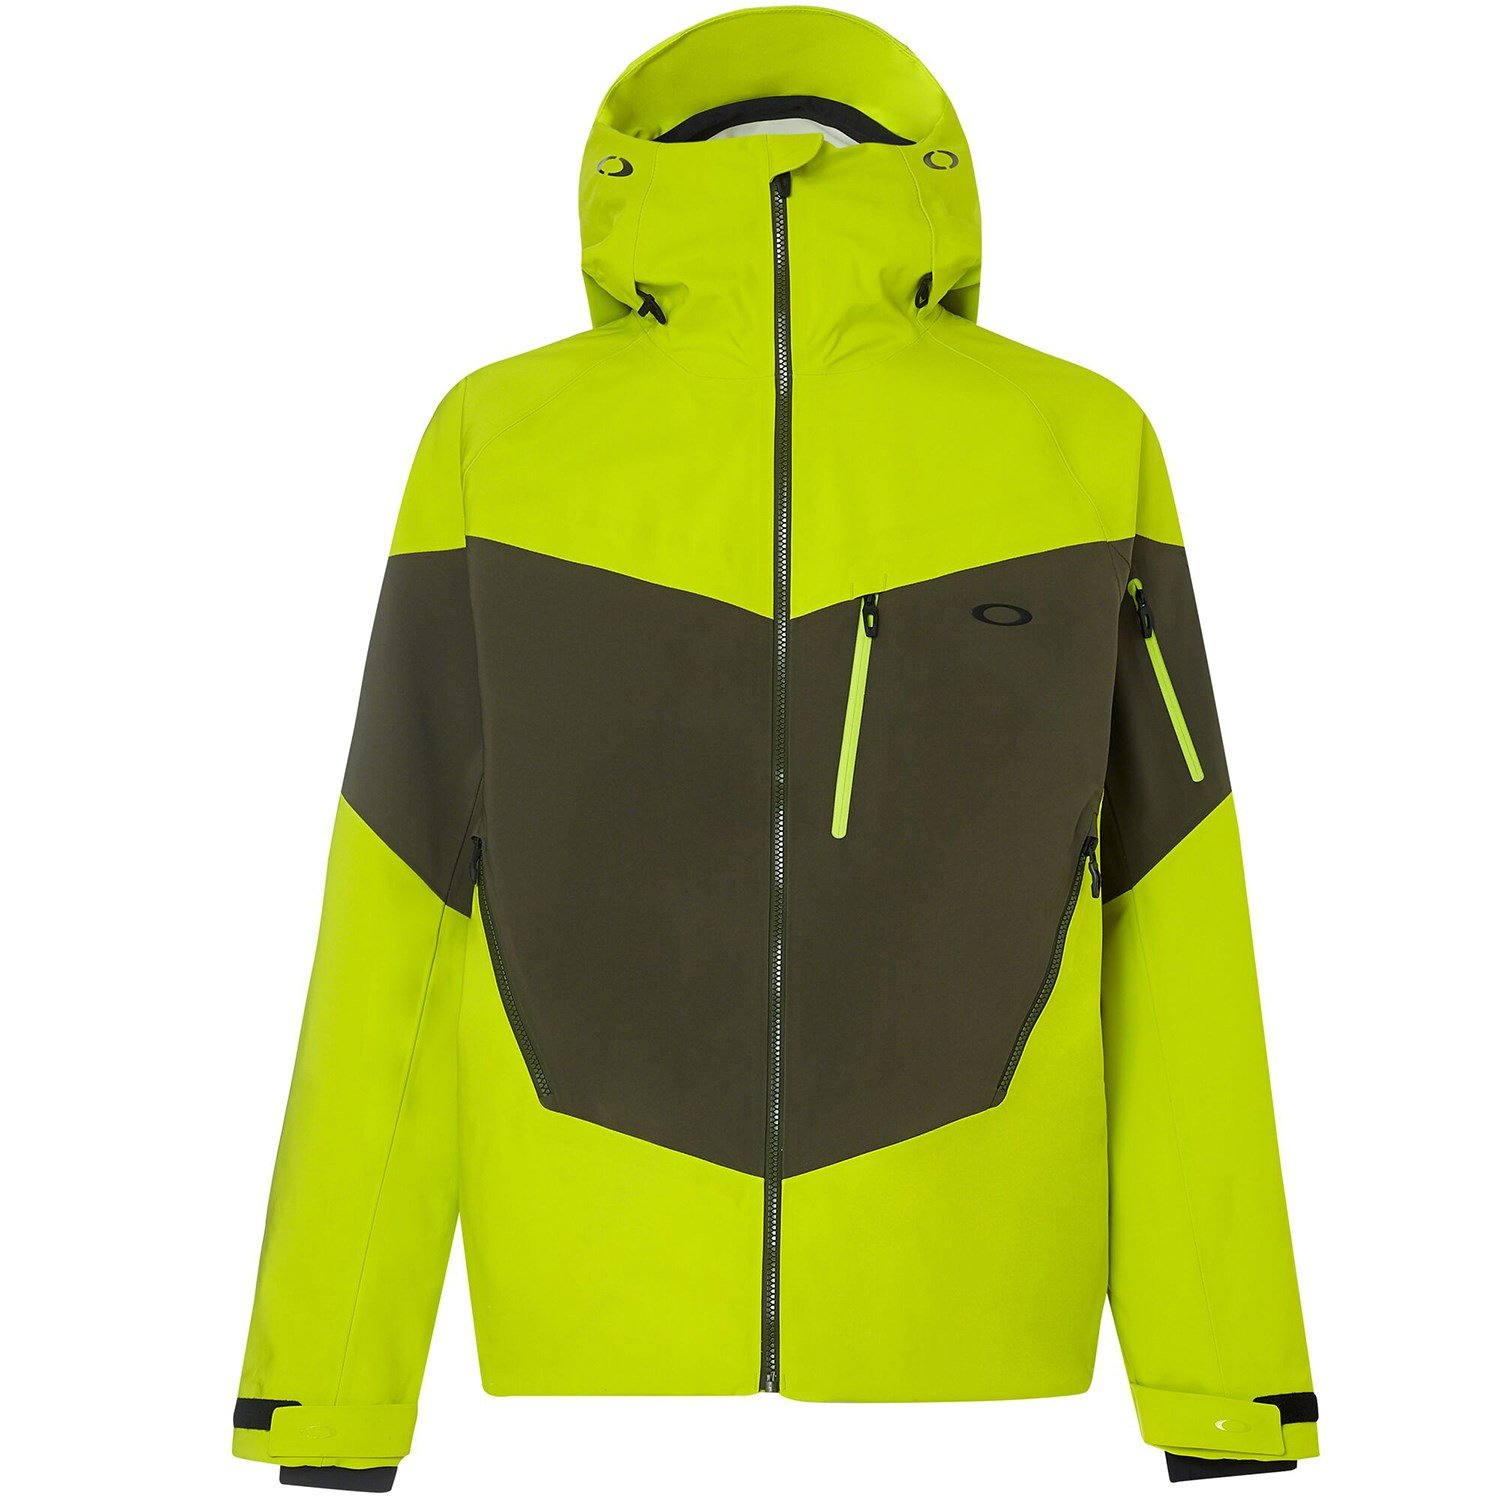 Oakley Timber 2.0 Shell 3L 15k Jacket